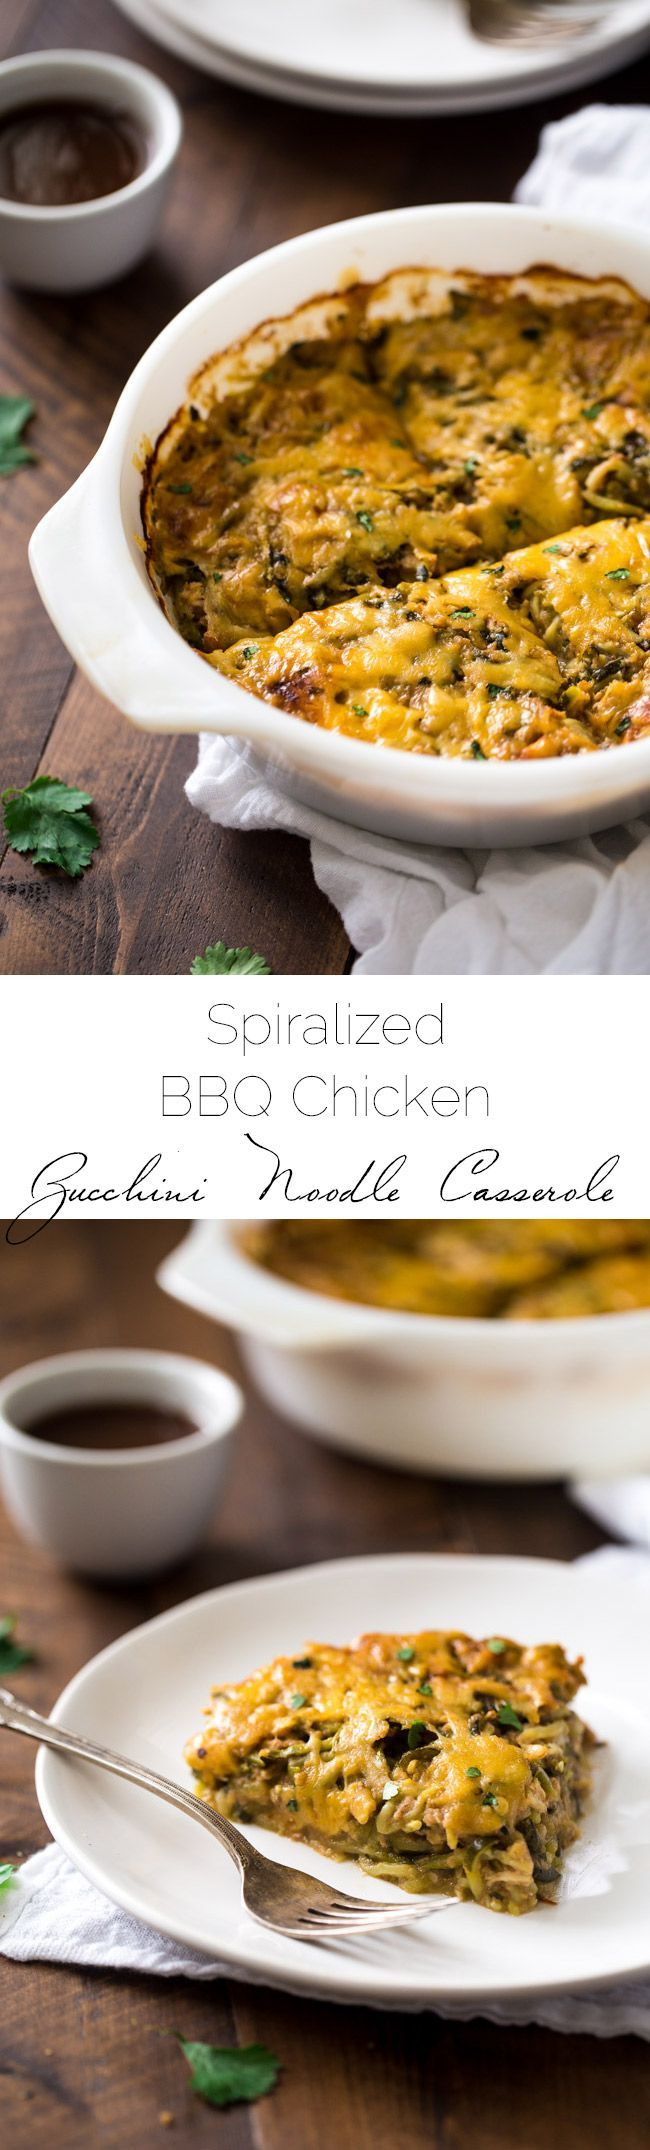 BBQ Chicken Casserole with Zucchini Noodles - low carb, grain free and super healthy with zucchini noodles! It's a protein packed, weeknight meal that the family will love!